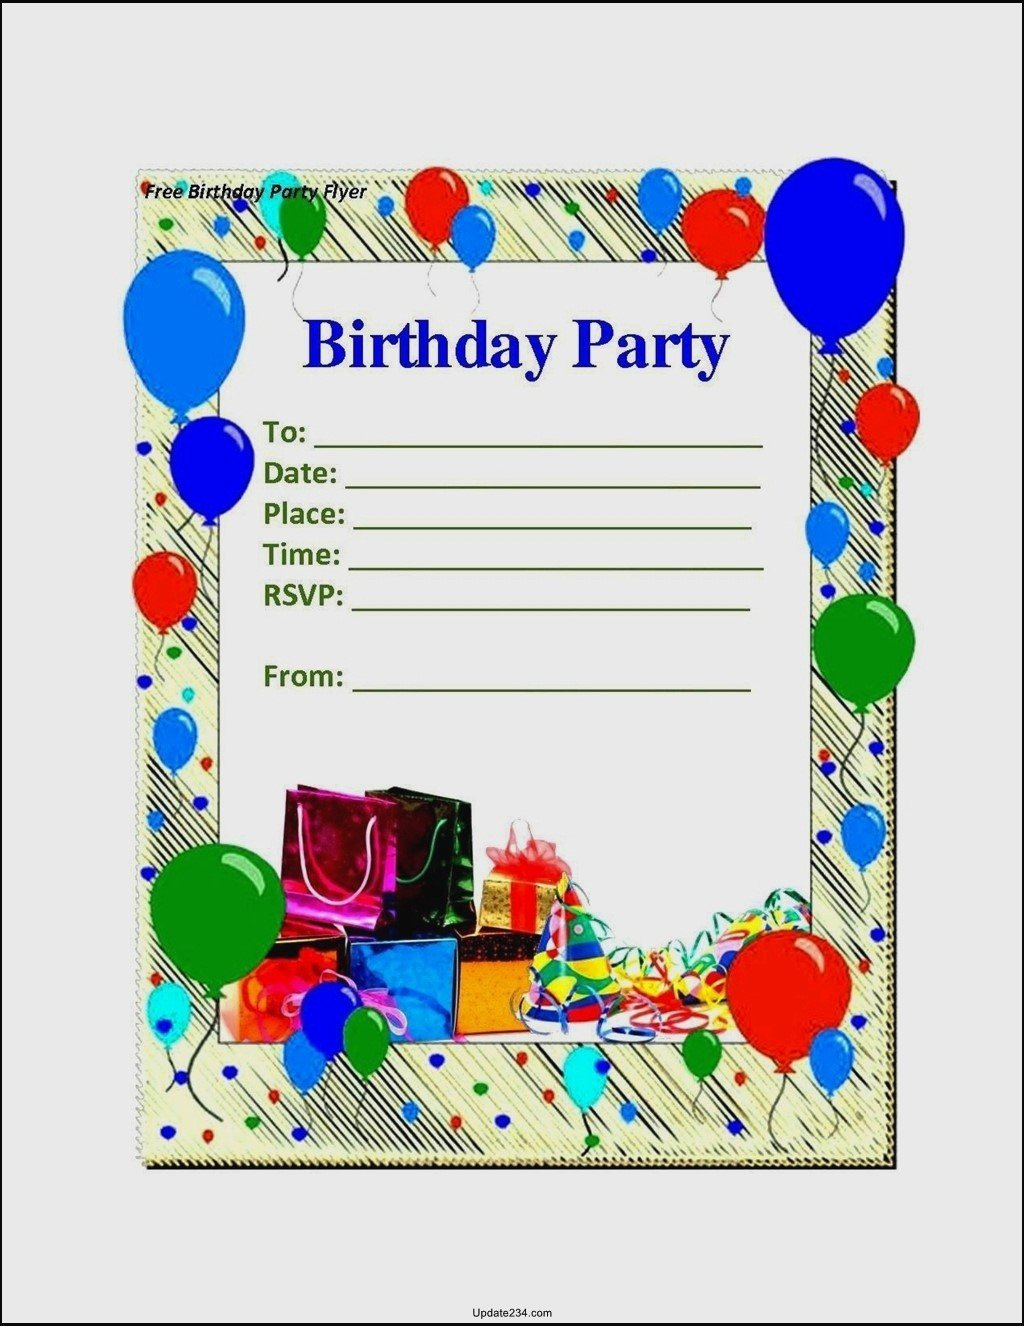 Birthday Card Template Word Fresh Blank Birthday Card Template Word Template Update234